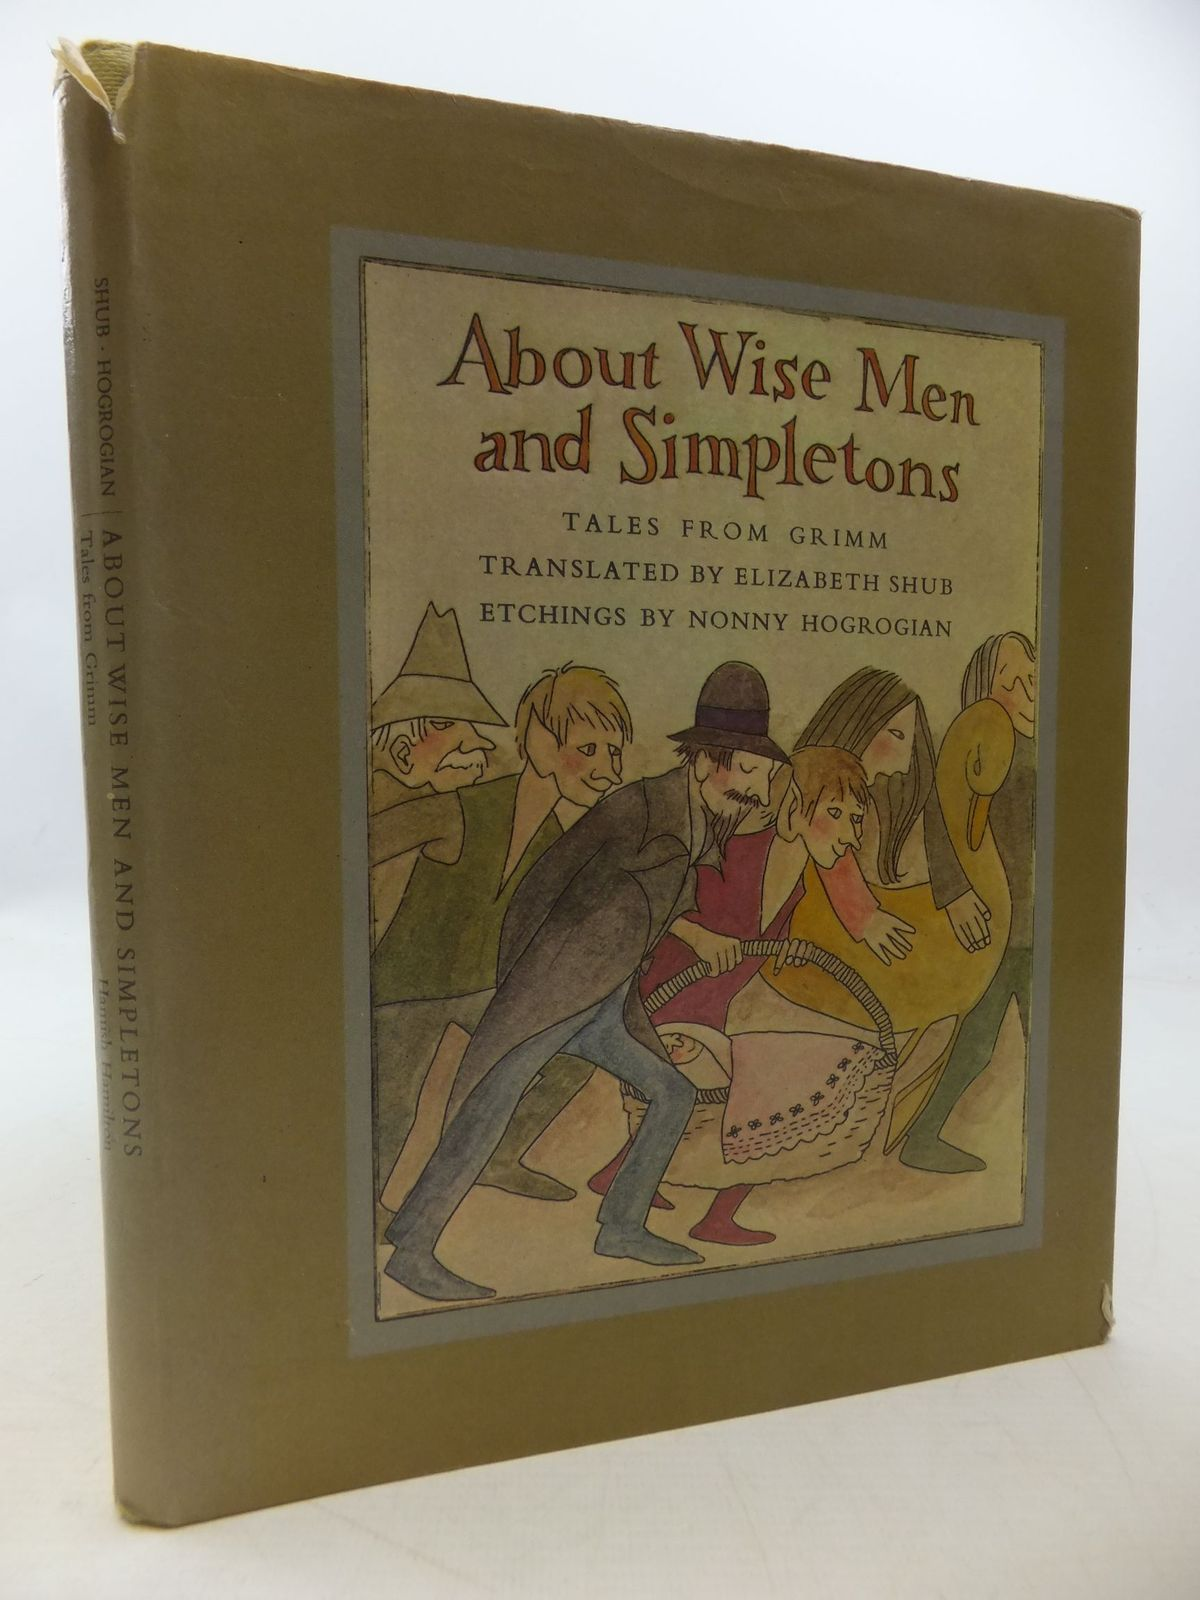 Photo of ABOUT WISE MEN AND SIMPLETONS written by Grimm, Brothers Shub, Elizabeth illustrated by Hogrogian, Nonny published by Hamish Hamilton (STOCK CODE: 1207887)  for sale by Stella & Rose's Books